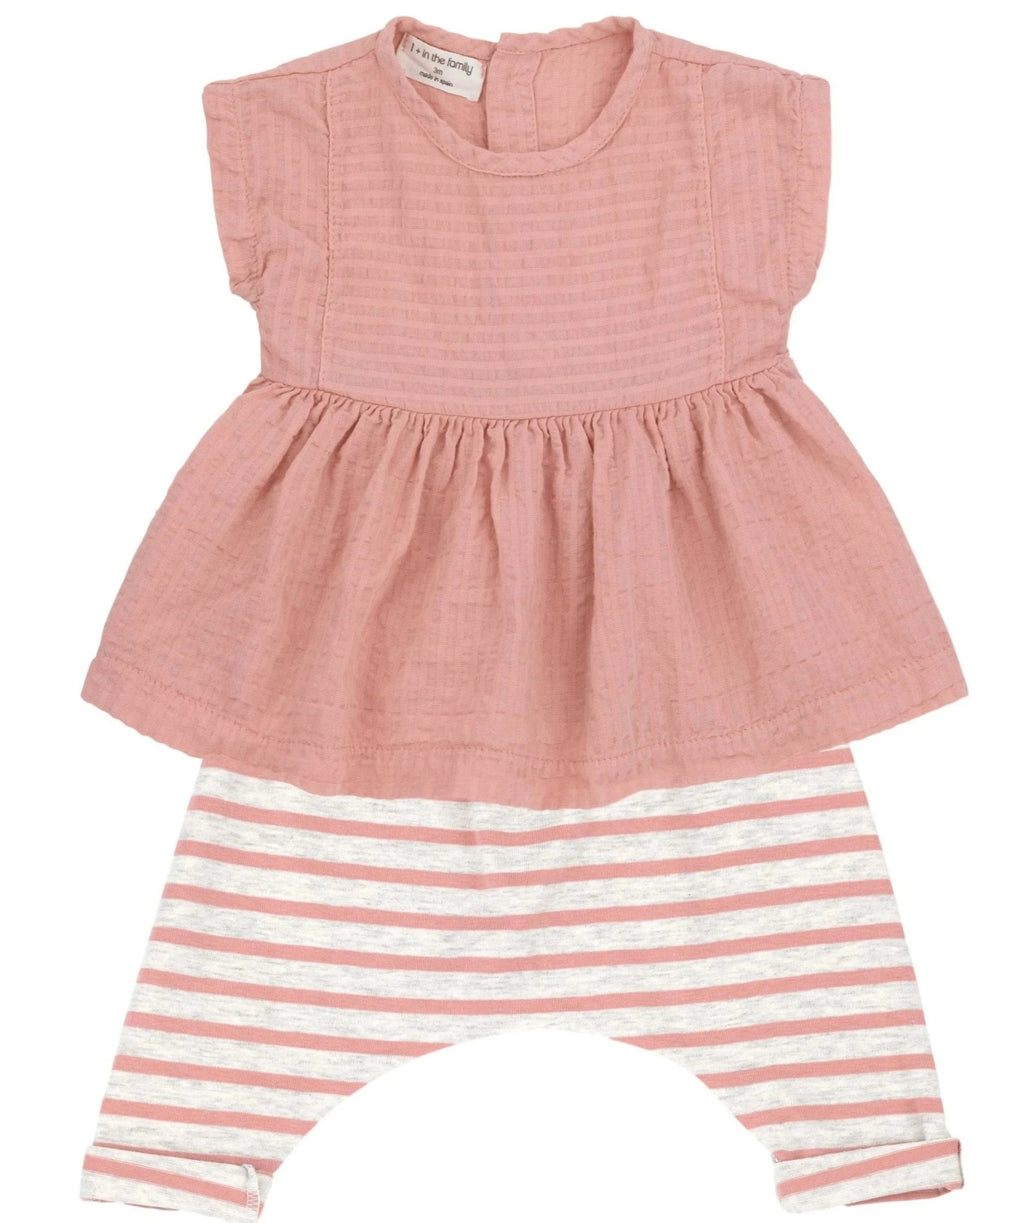 One + In the Family Baby Girl Deva & Sammy Outfit Set